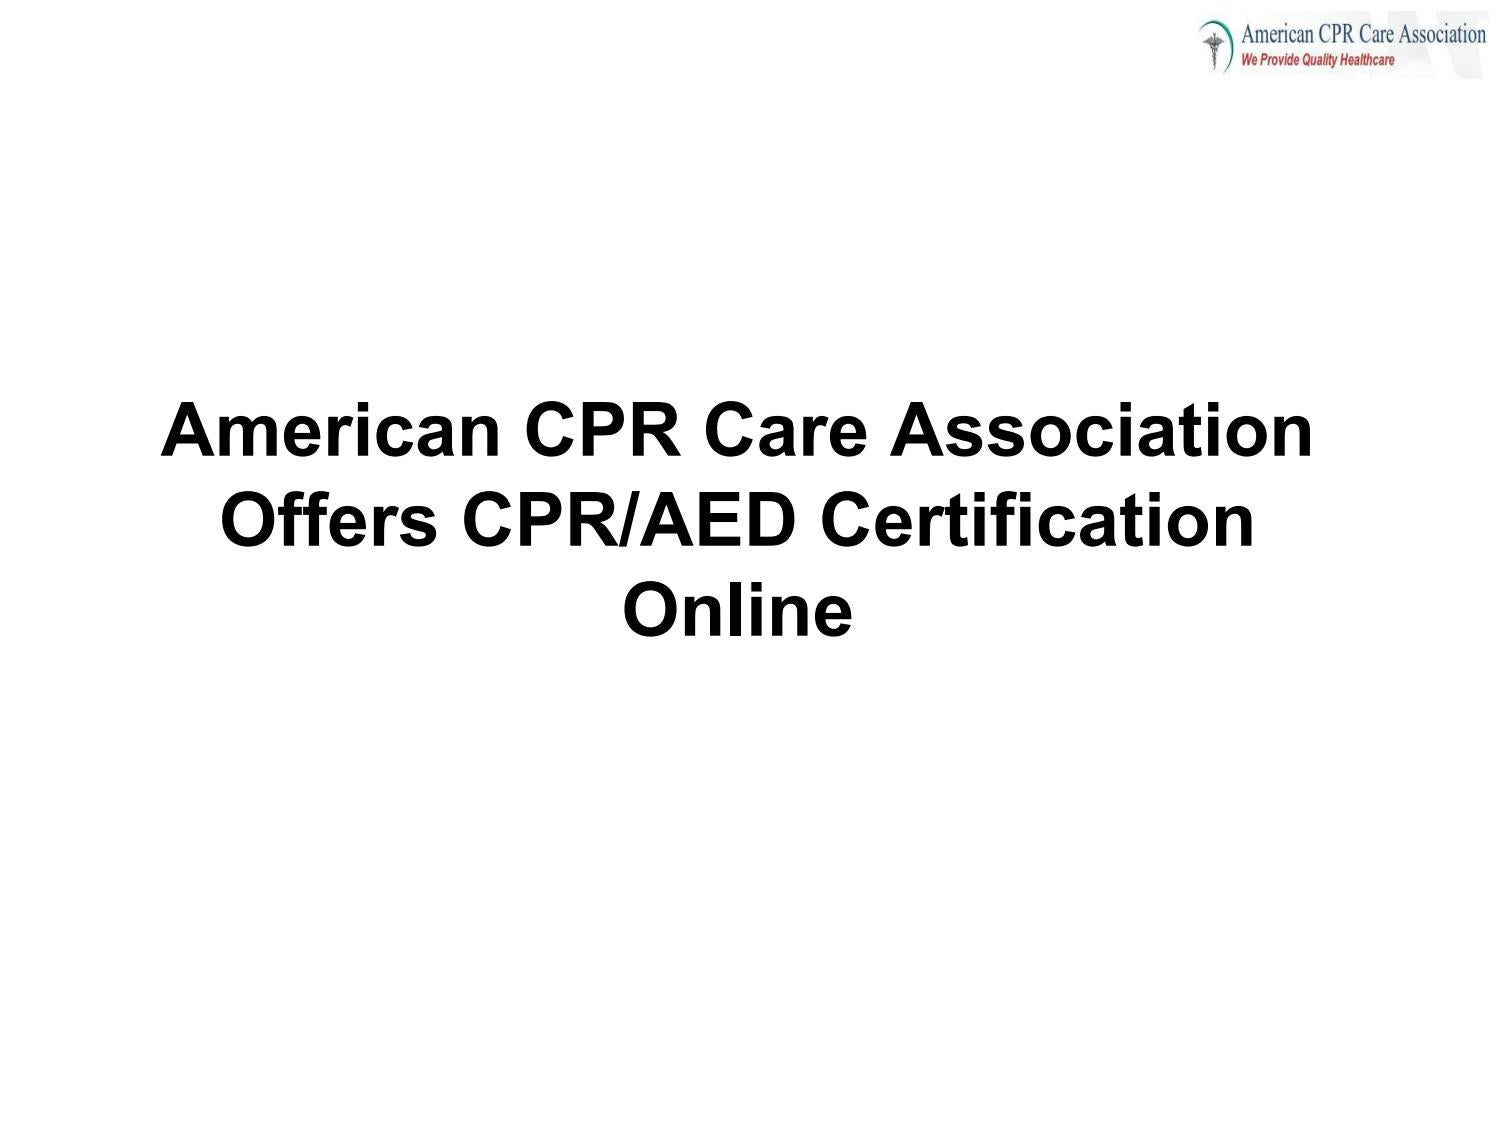 American Cpr Care Association Offers Cpraed Certification Online By